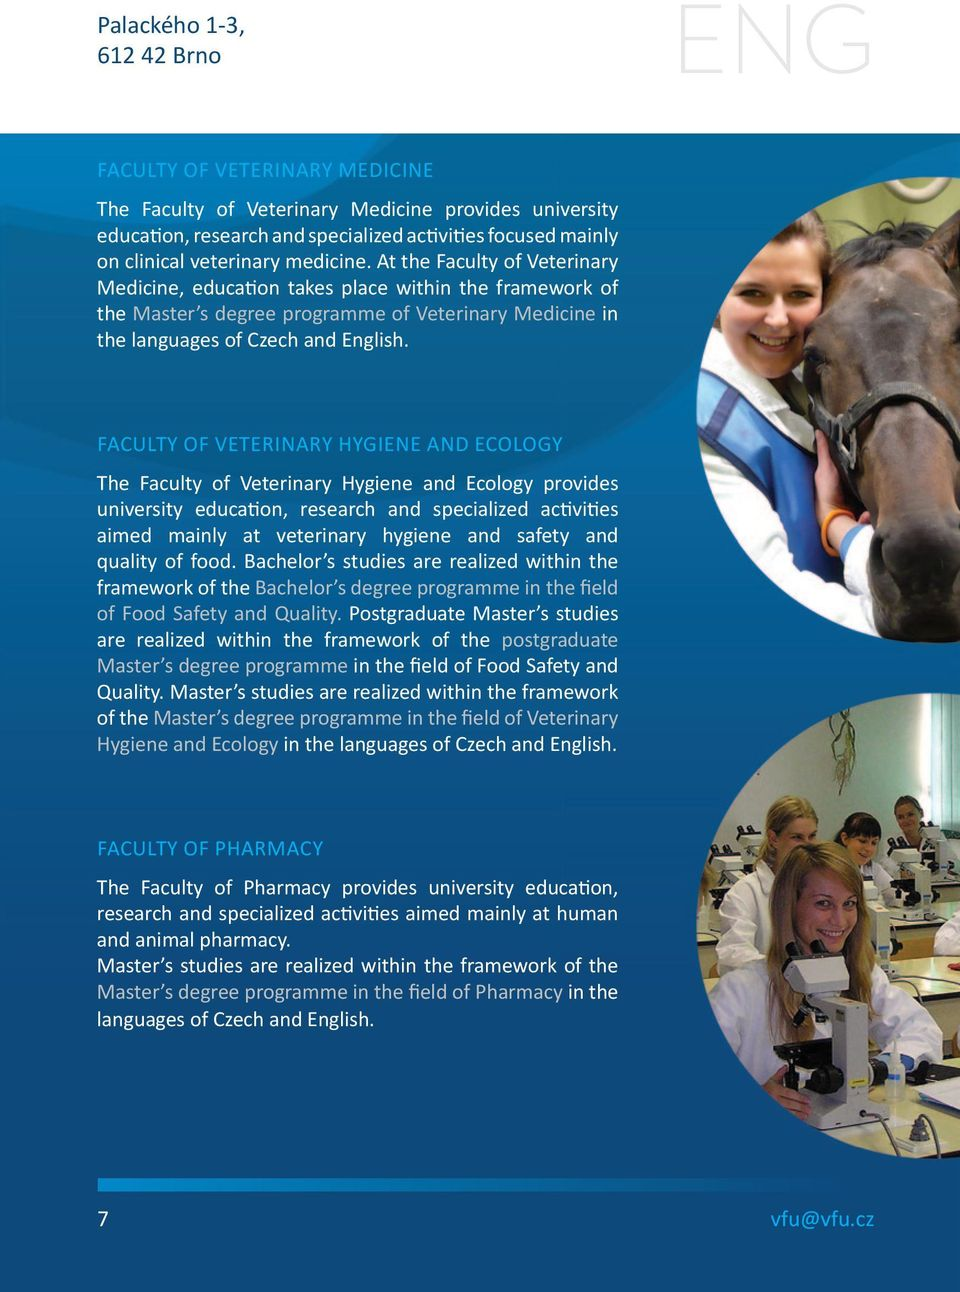 FACULTY OF VETERINARY HYGIENE AND ECOLOGY The Faculty of Veterinary Hygiene and Ecology provides university education, research and specialized activities aimed mainly at veterinary hygiene and